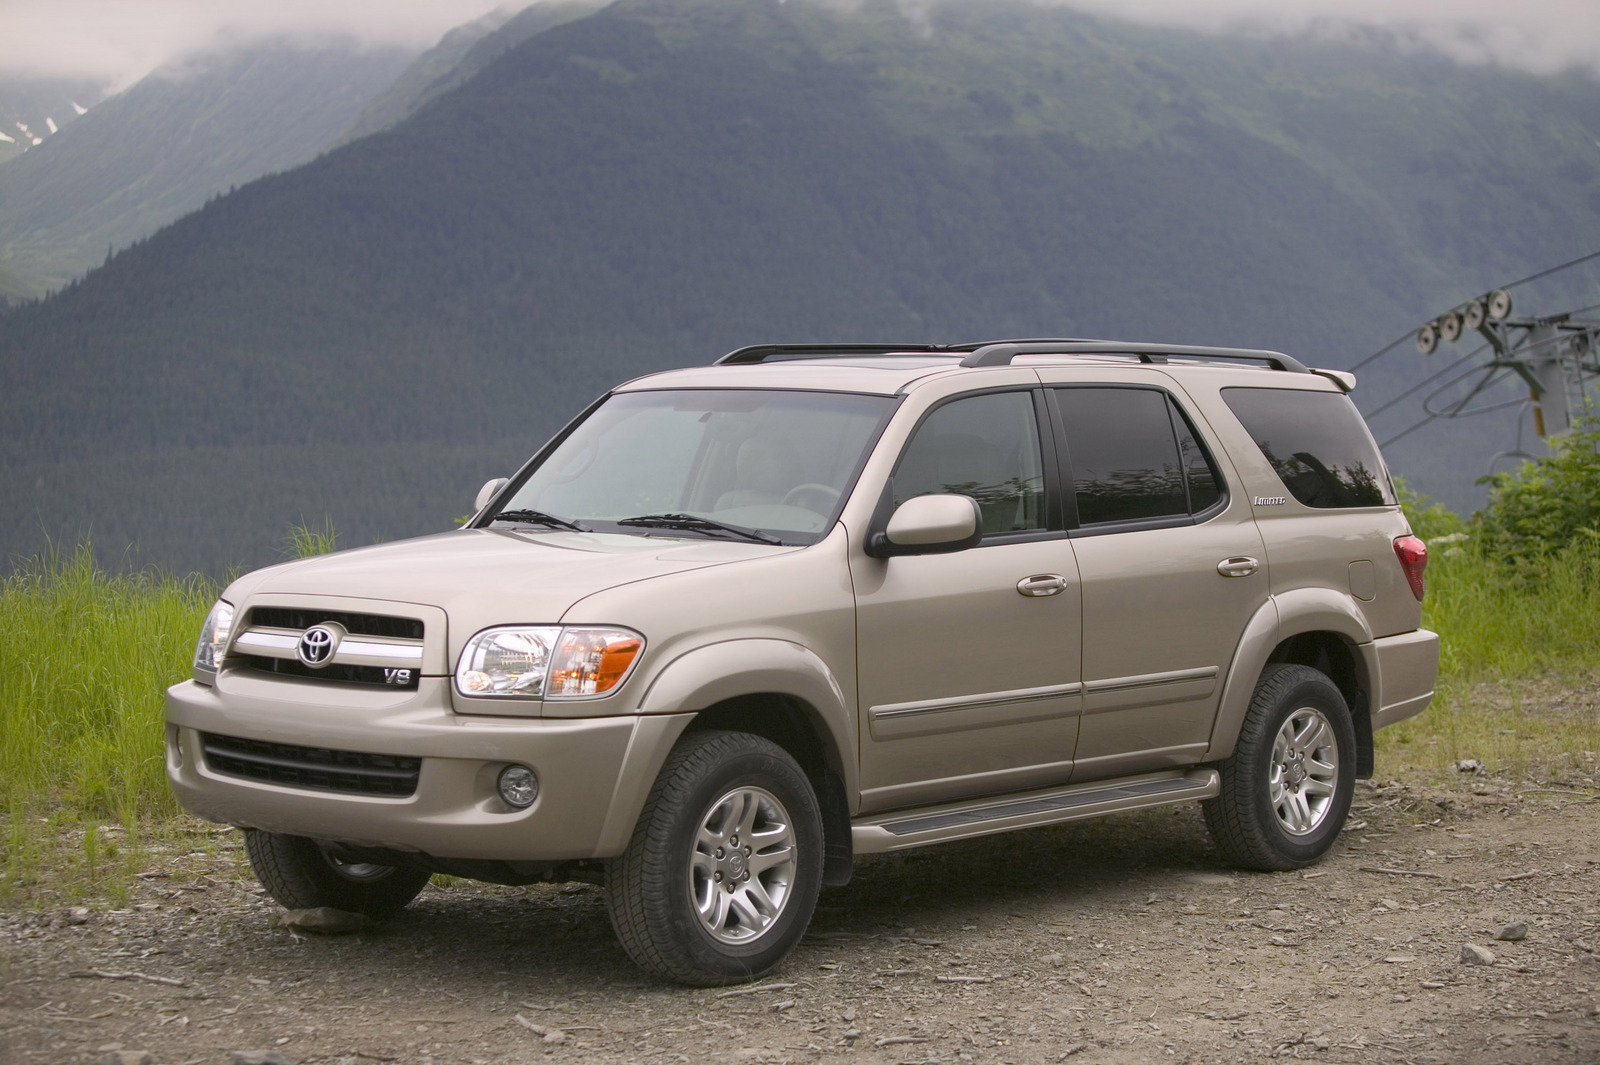 2006 toyota sequoia review top speed. Black Bedroom Furniture Sets. Home Design Ideas